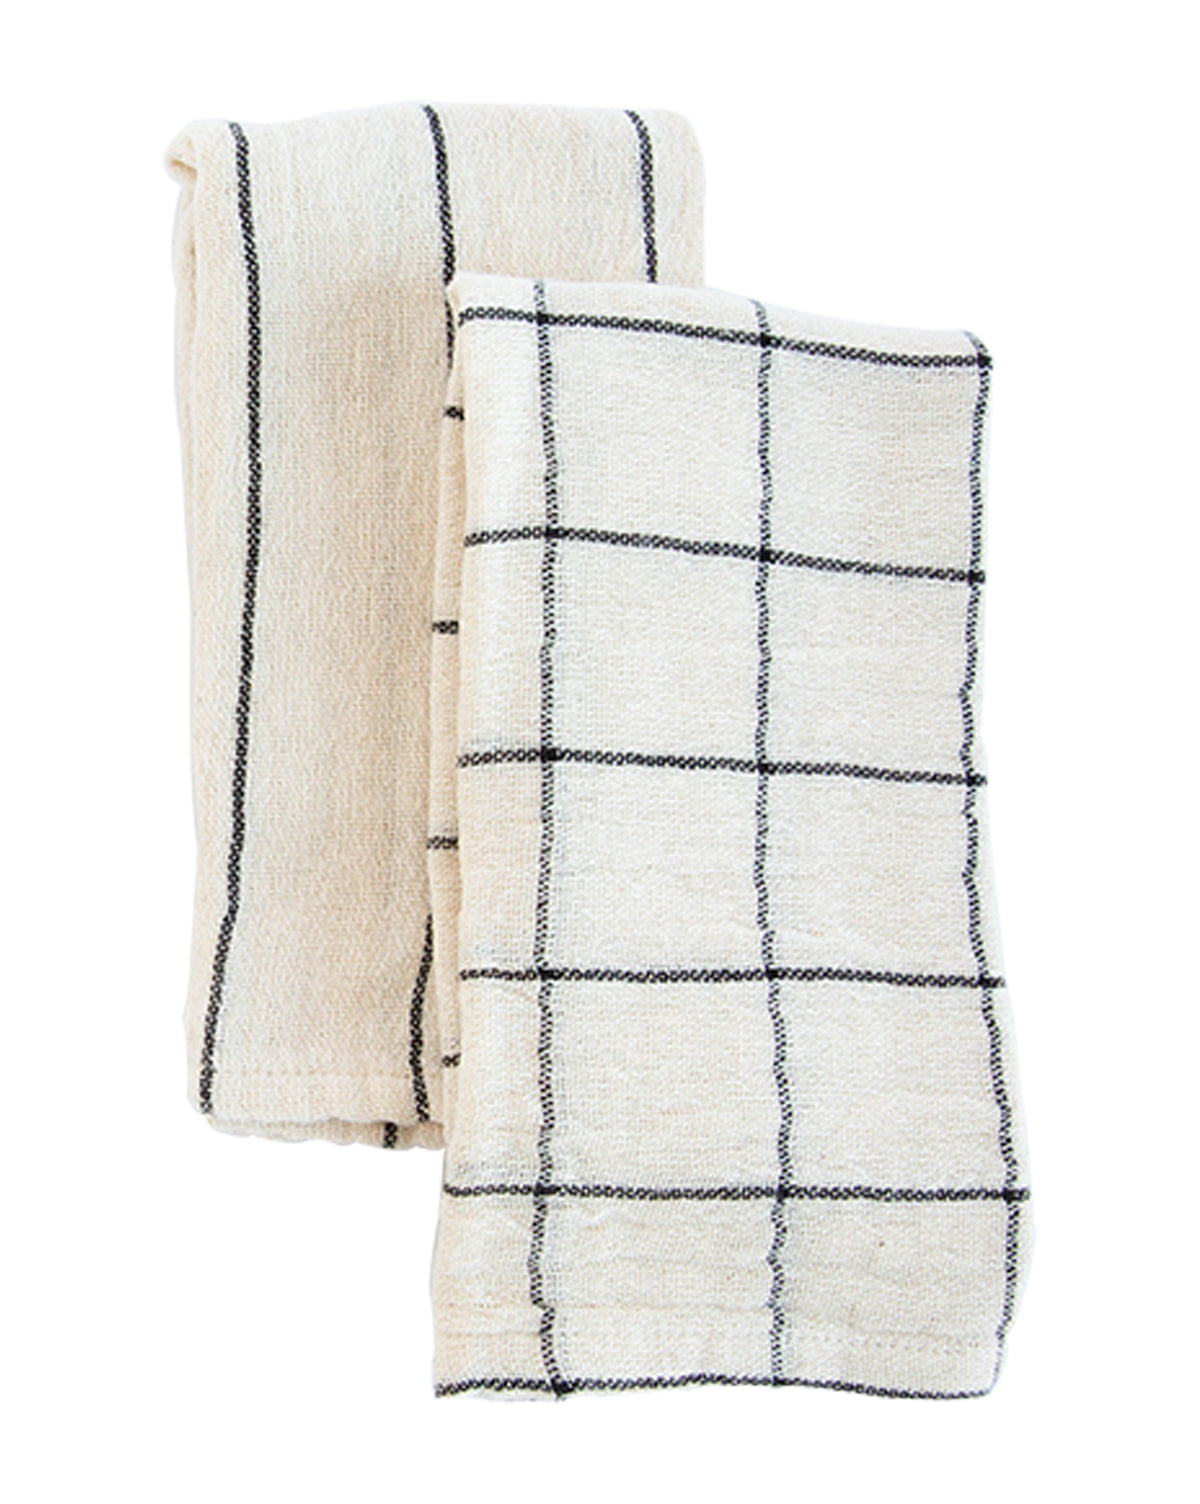 Woven Cotton Napkins (Set of 4)